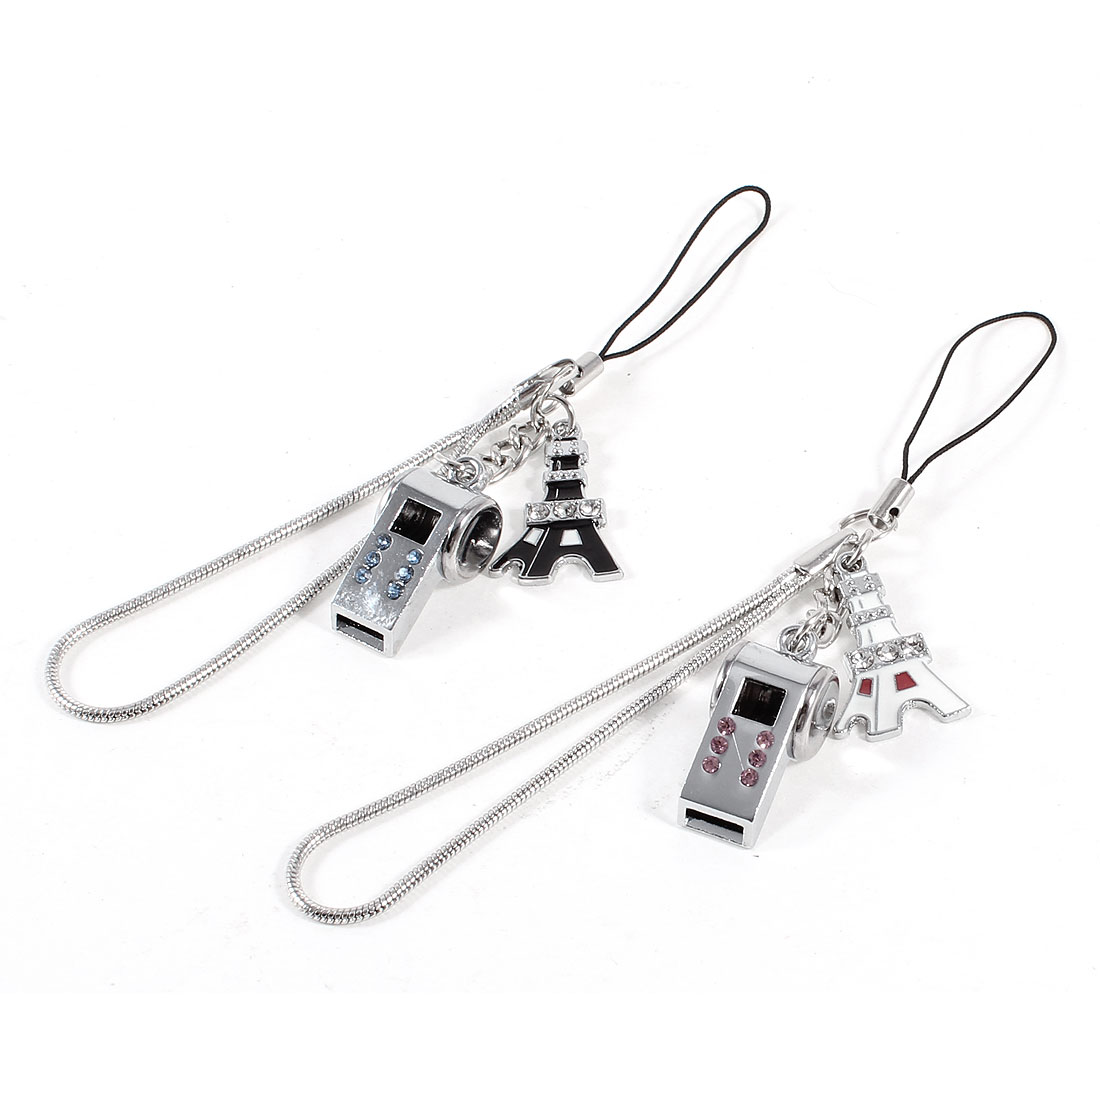 Pair Silver Tone Whistle Tower Pendant Phone Bag Hanging Decoration for Lovers Couples